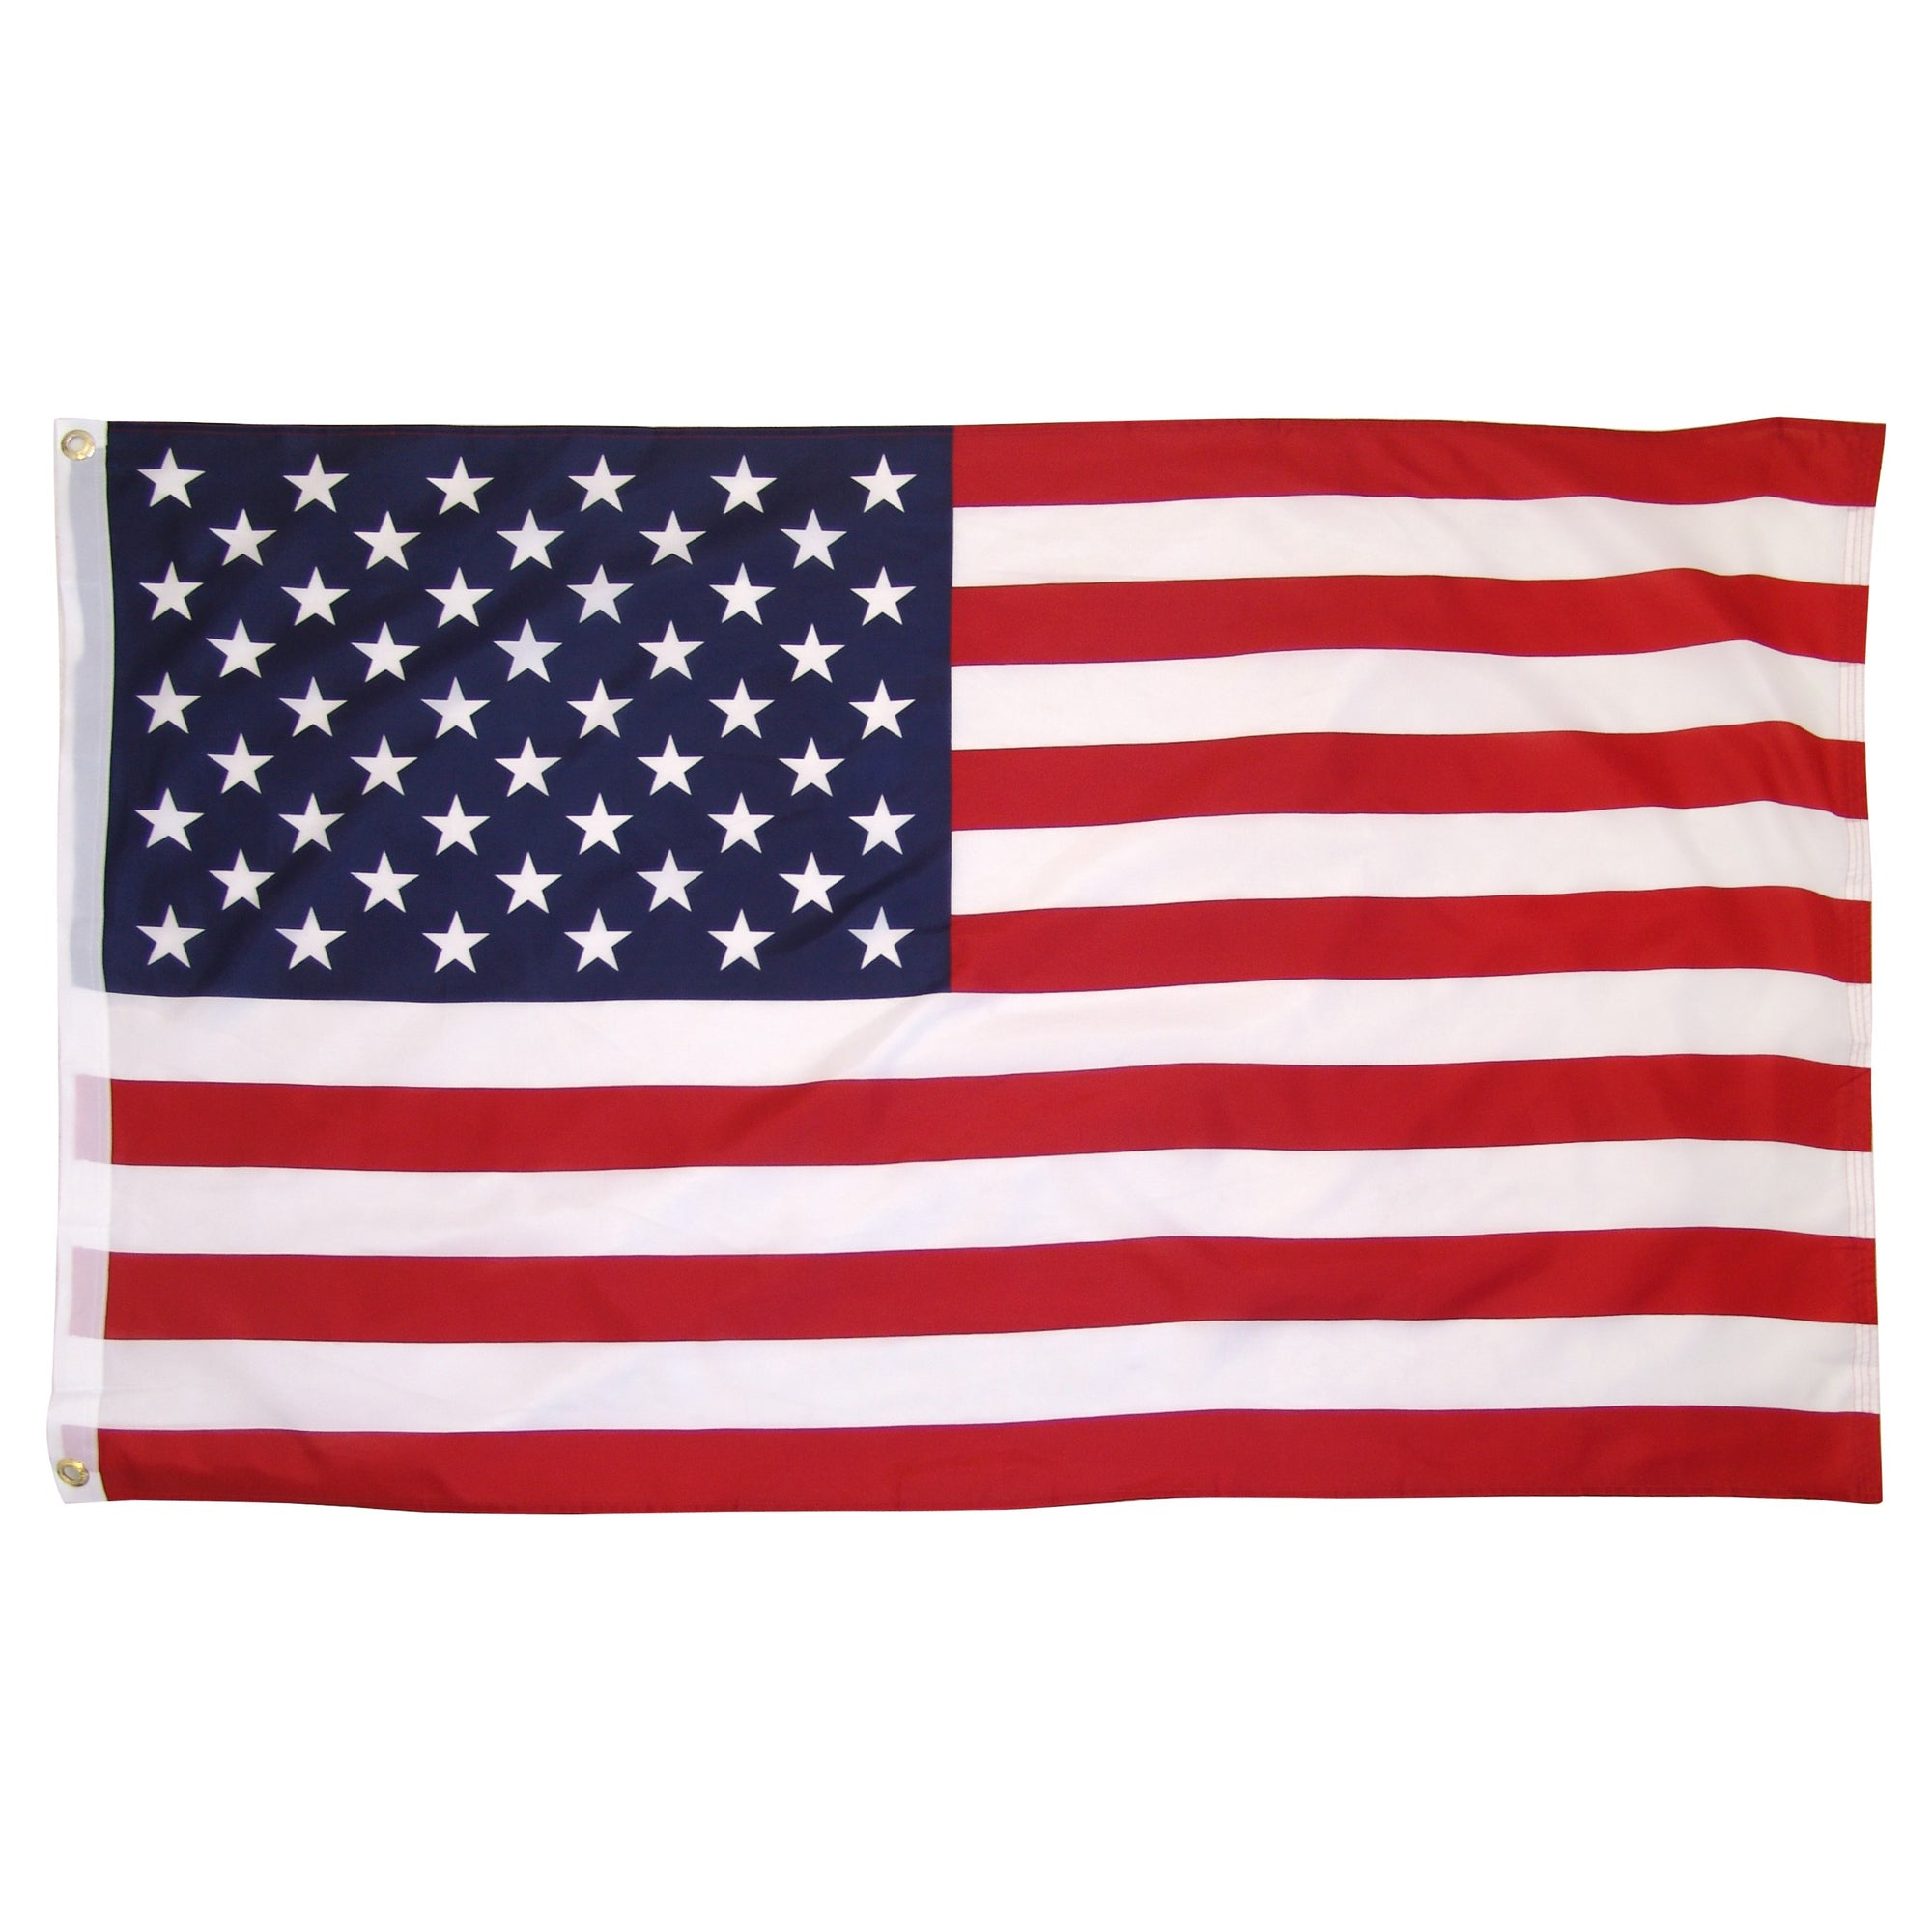 United States Eder Flag 2X3 Feet Fully Printed Sun-Brite Nylon